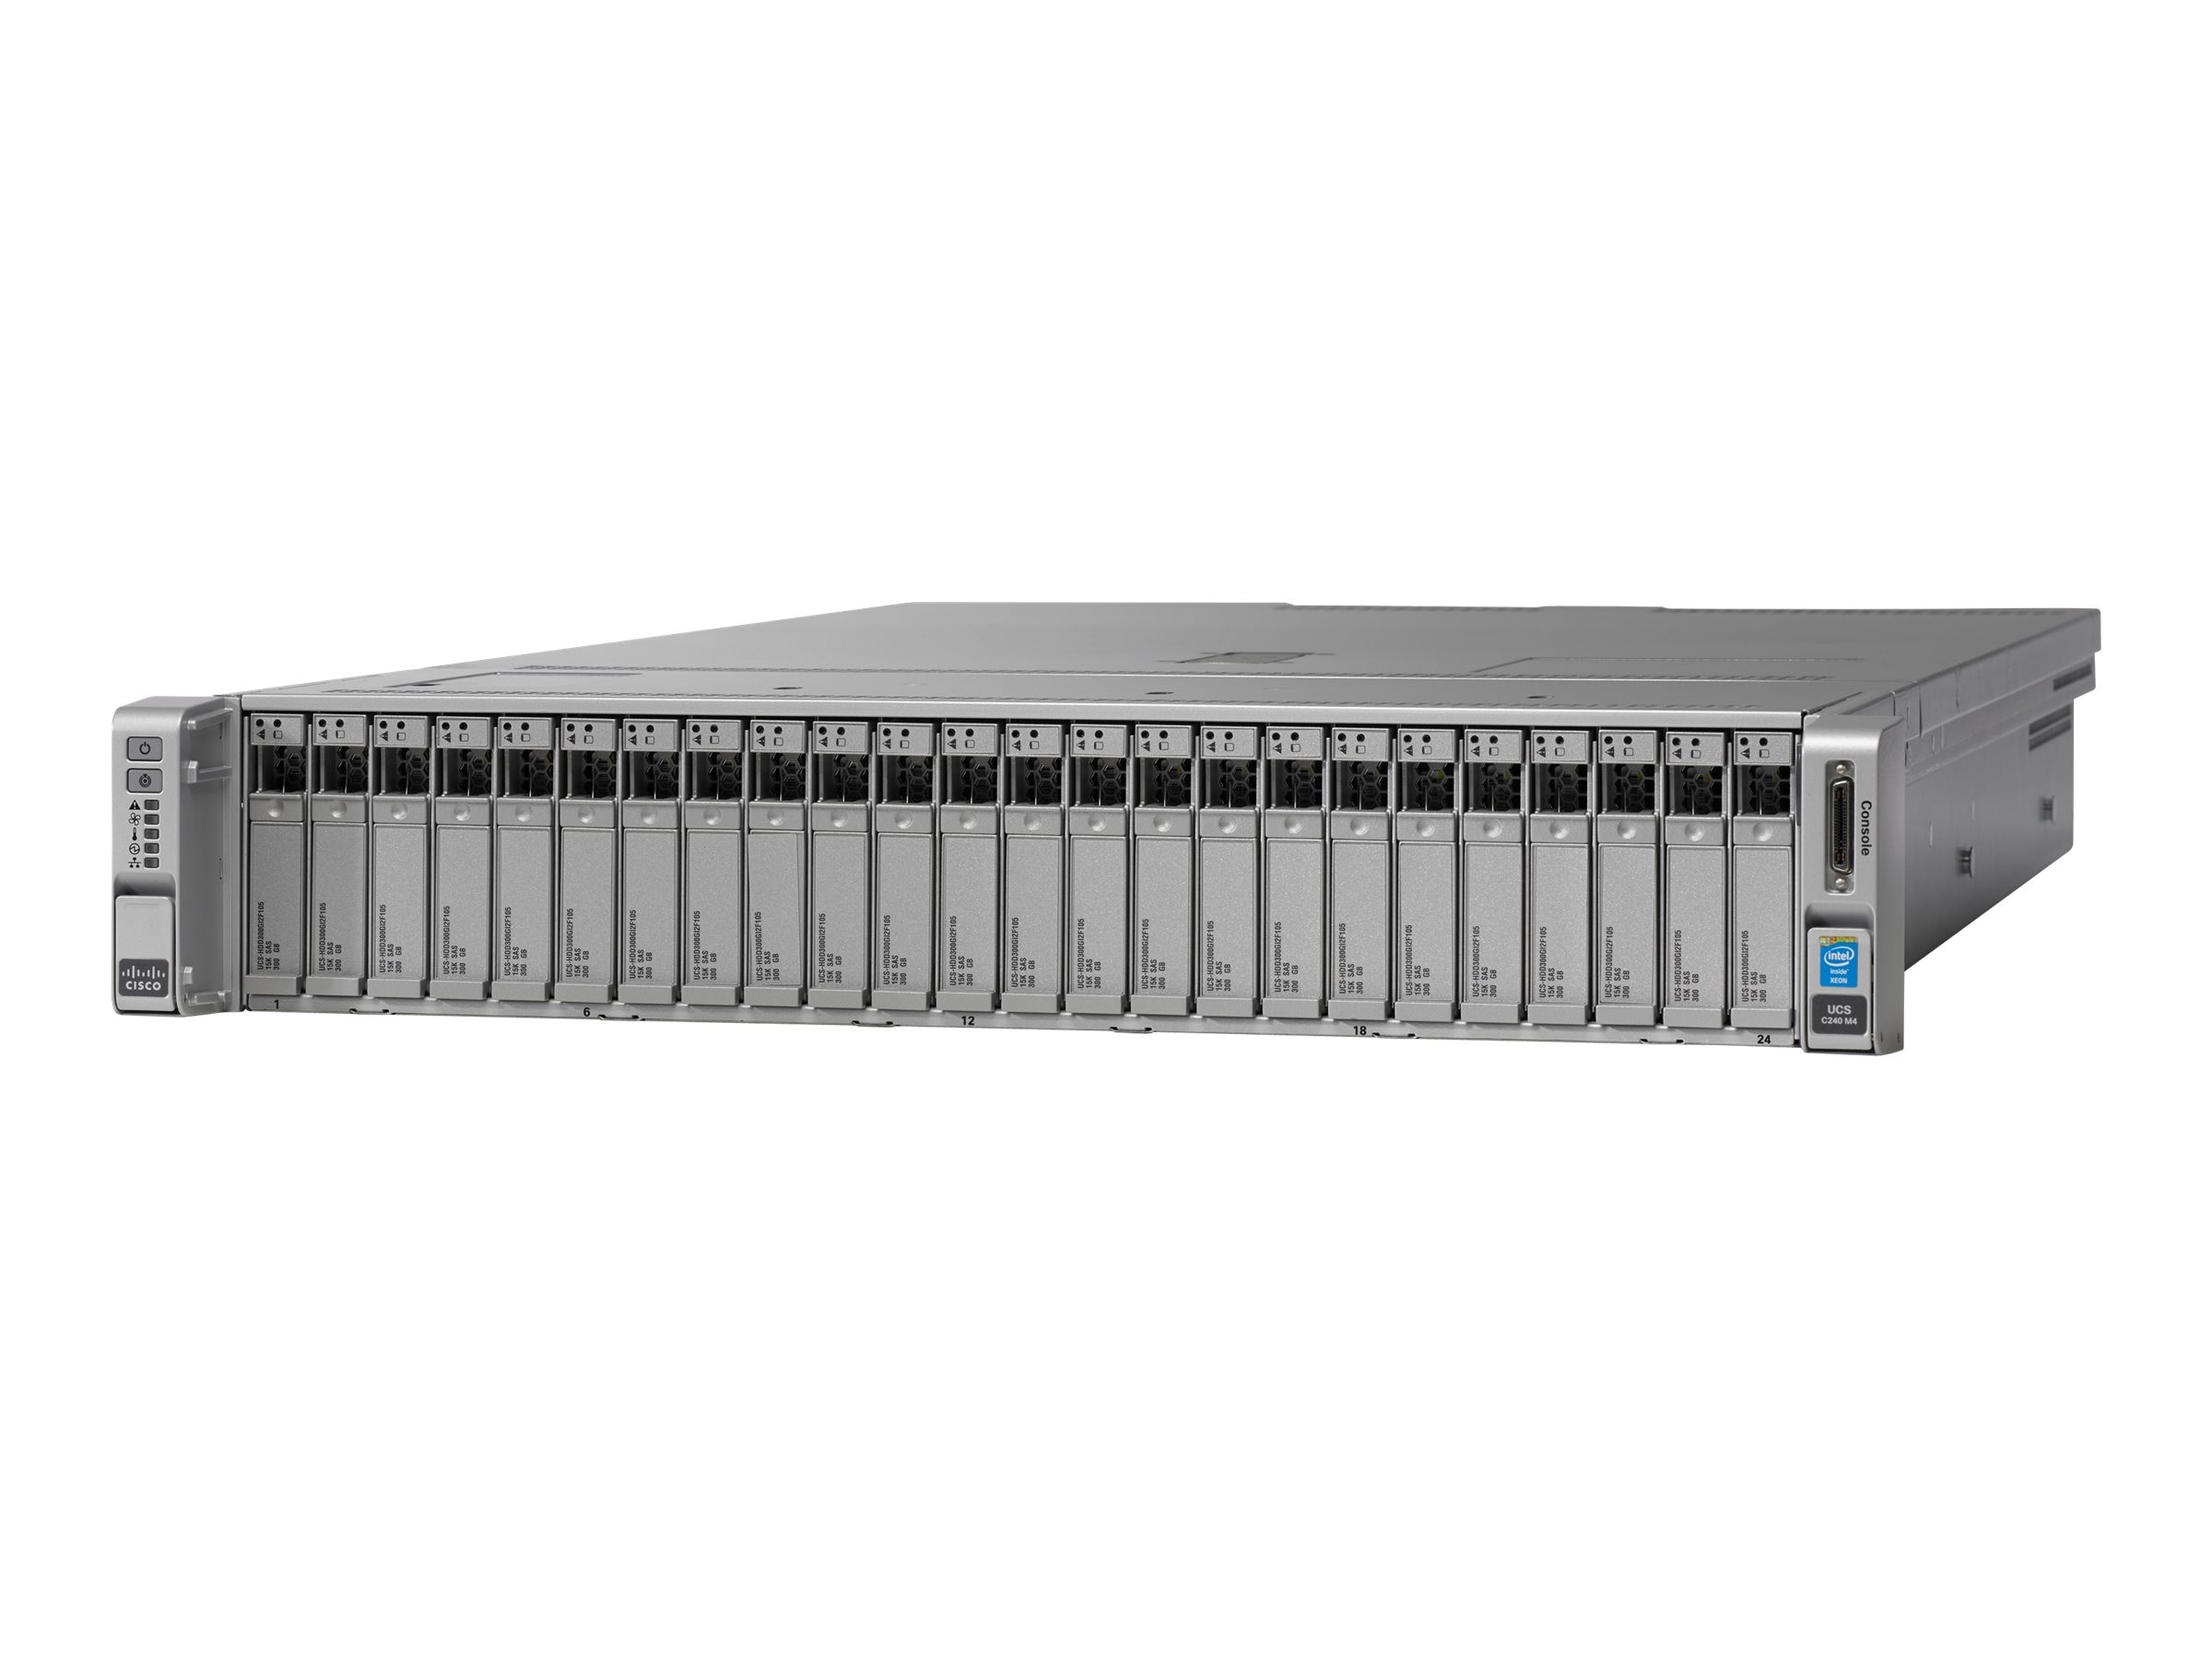 Cisco UCS C240 M4S (2x)E5-2650 v4 2x32GB MRAID 2x1200W 32GB SD Rails